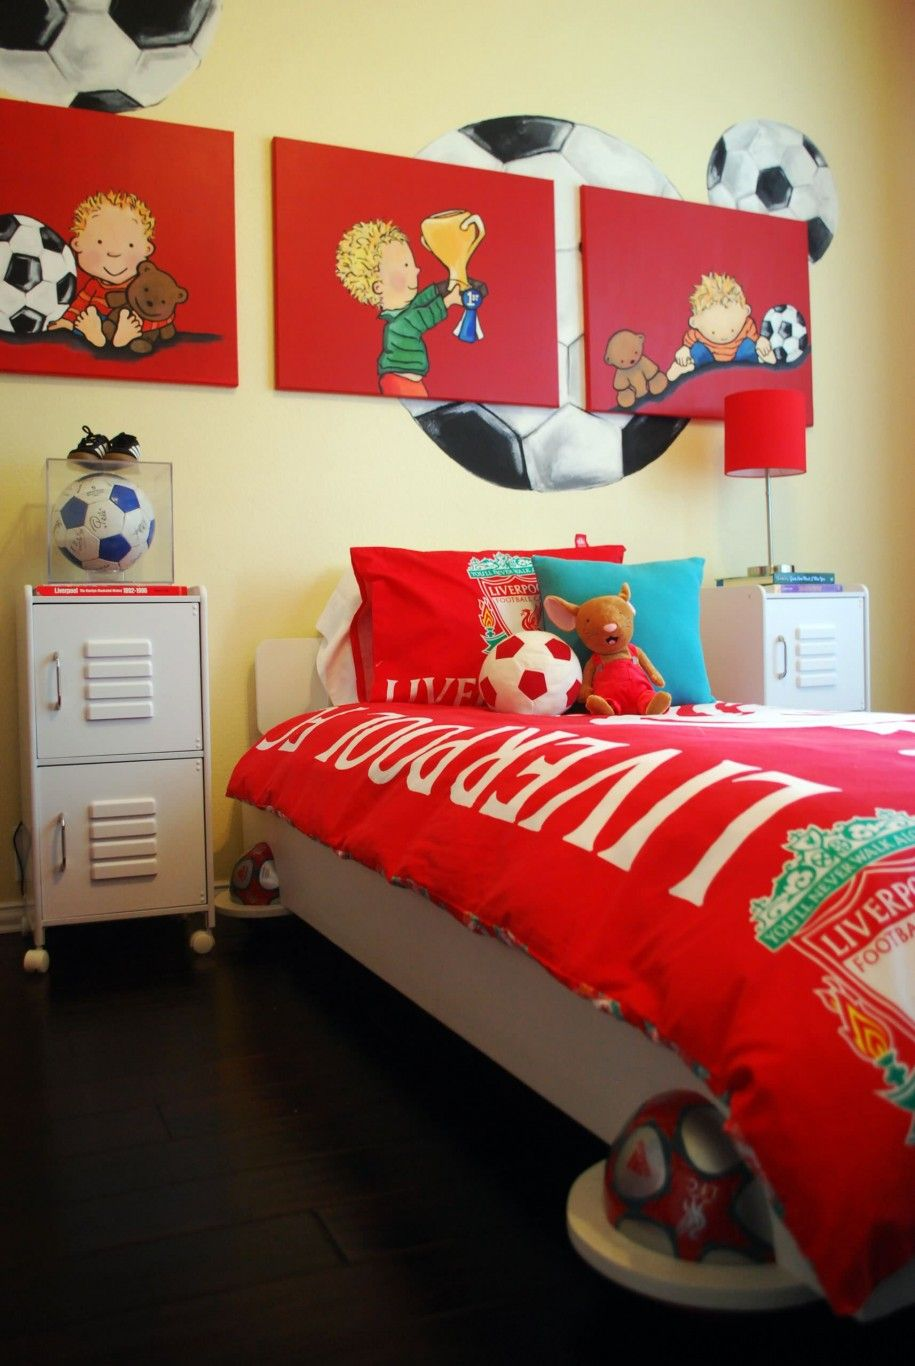 Boys soccer bedroom ideas - Boys Soccer Bedroom